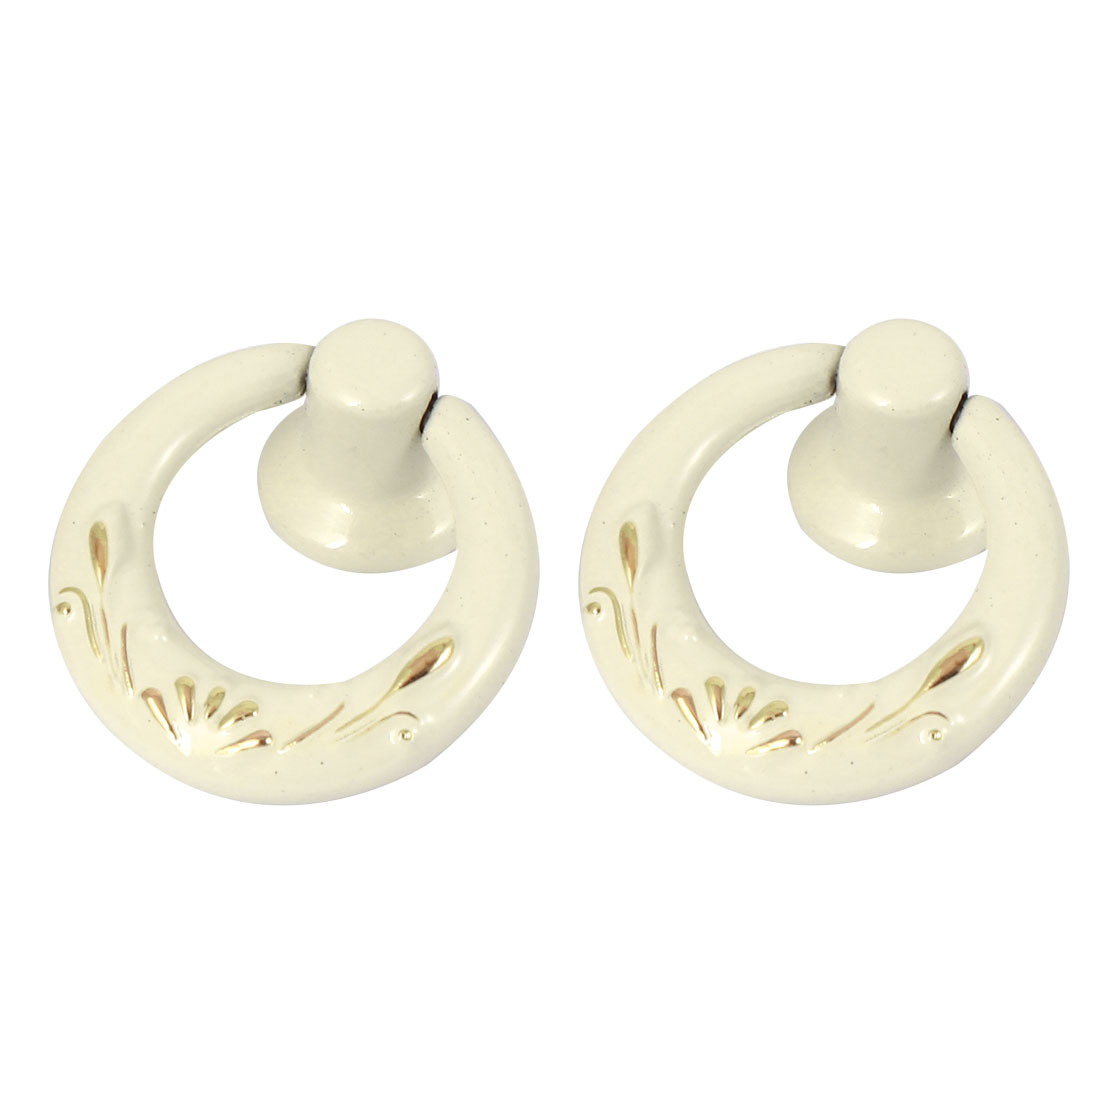 Wardrobe Cabinet Door Cupboard Drawer Pull Ring Handle Knobs Ivory White 2 Pcs